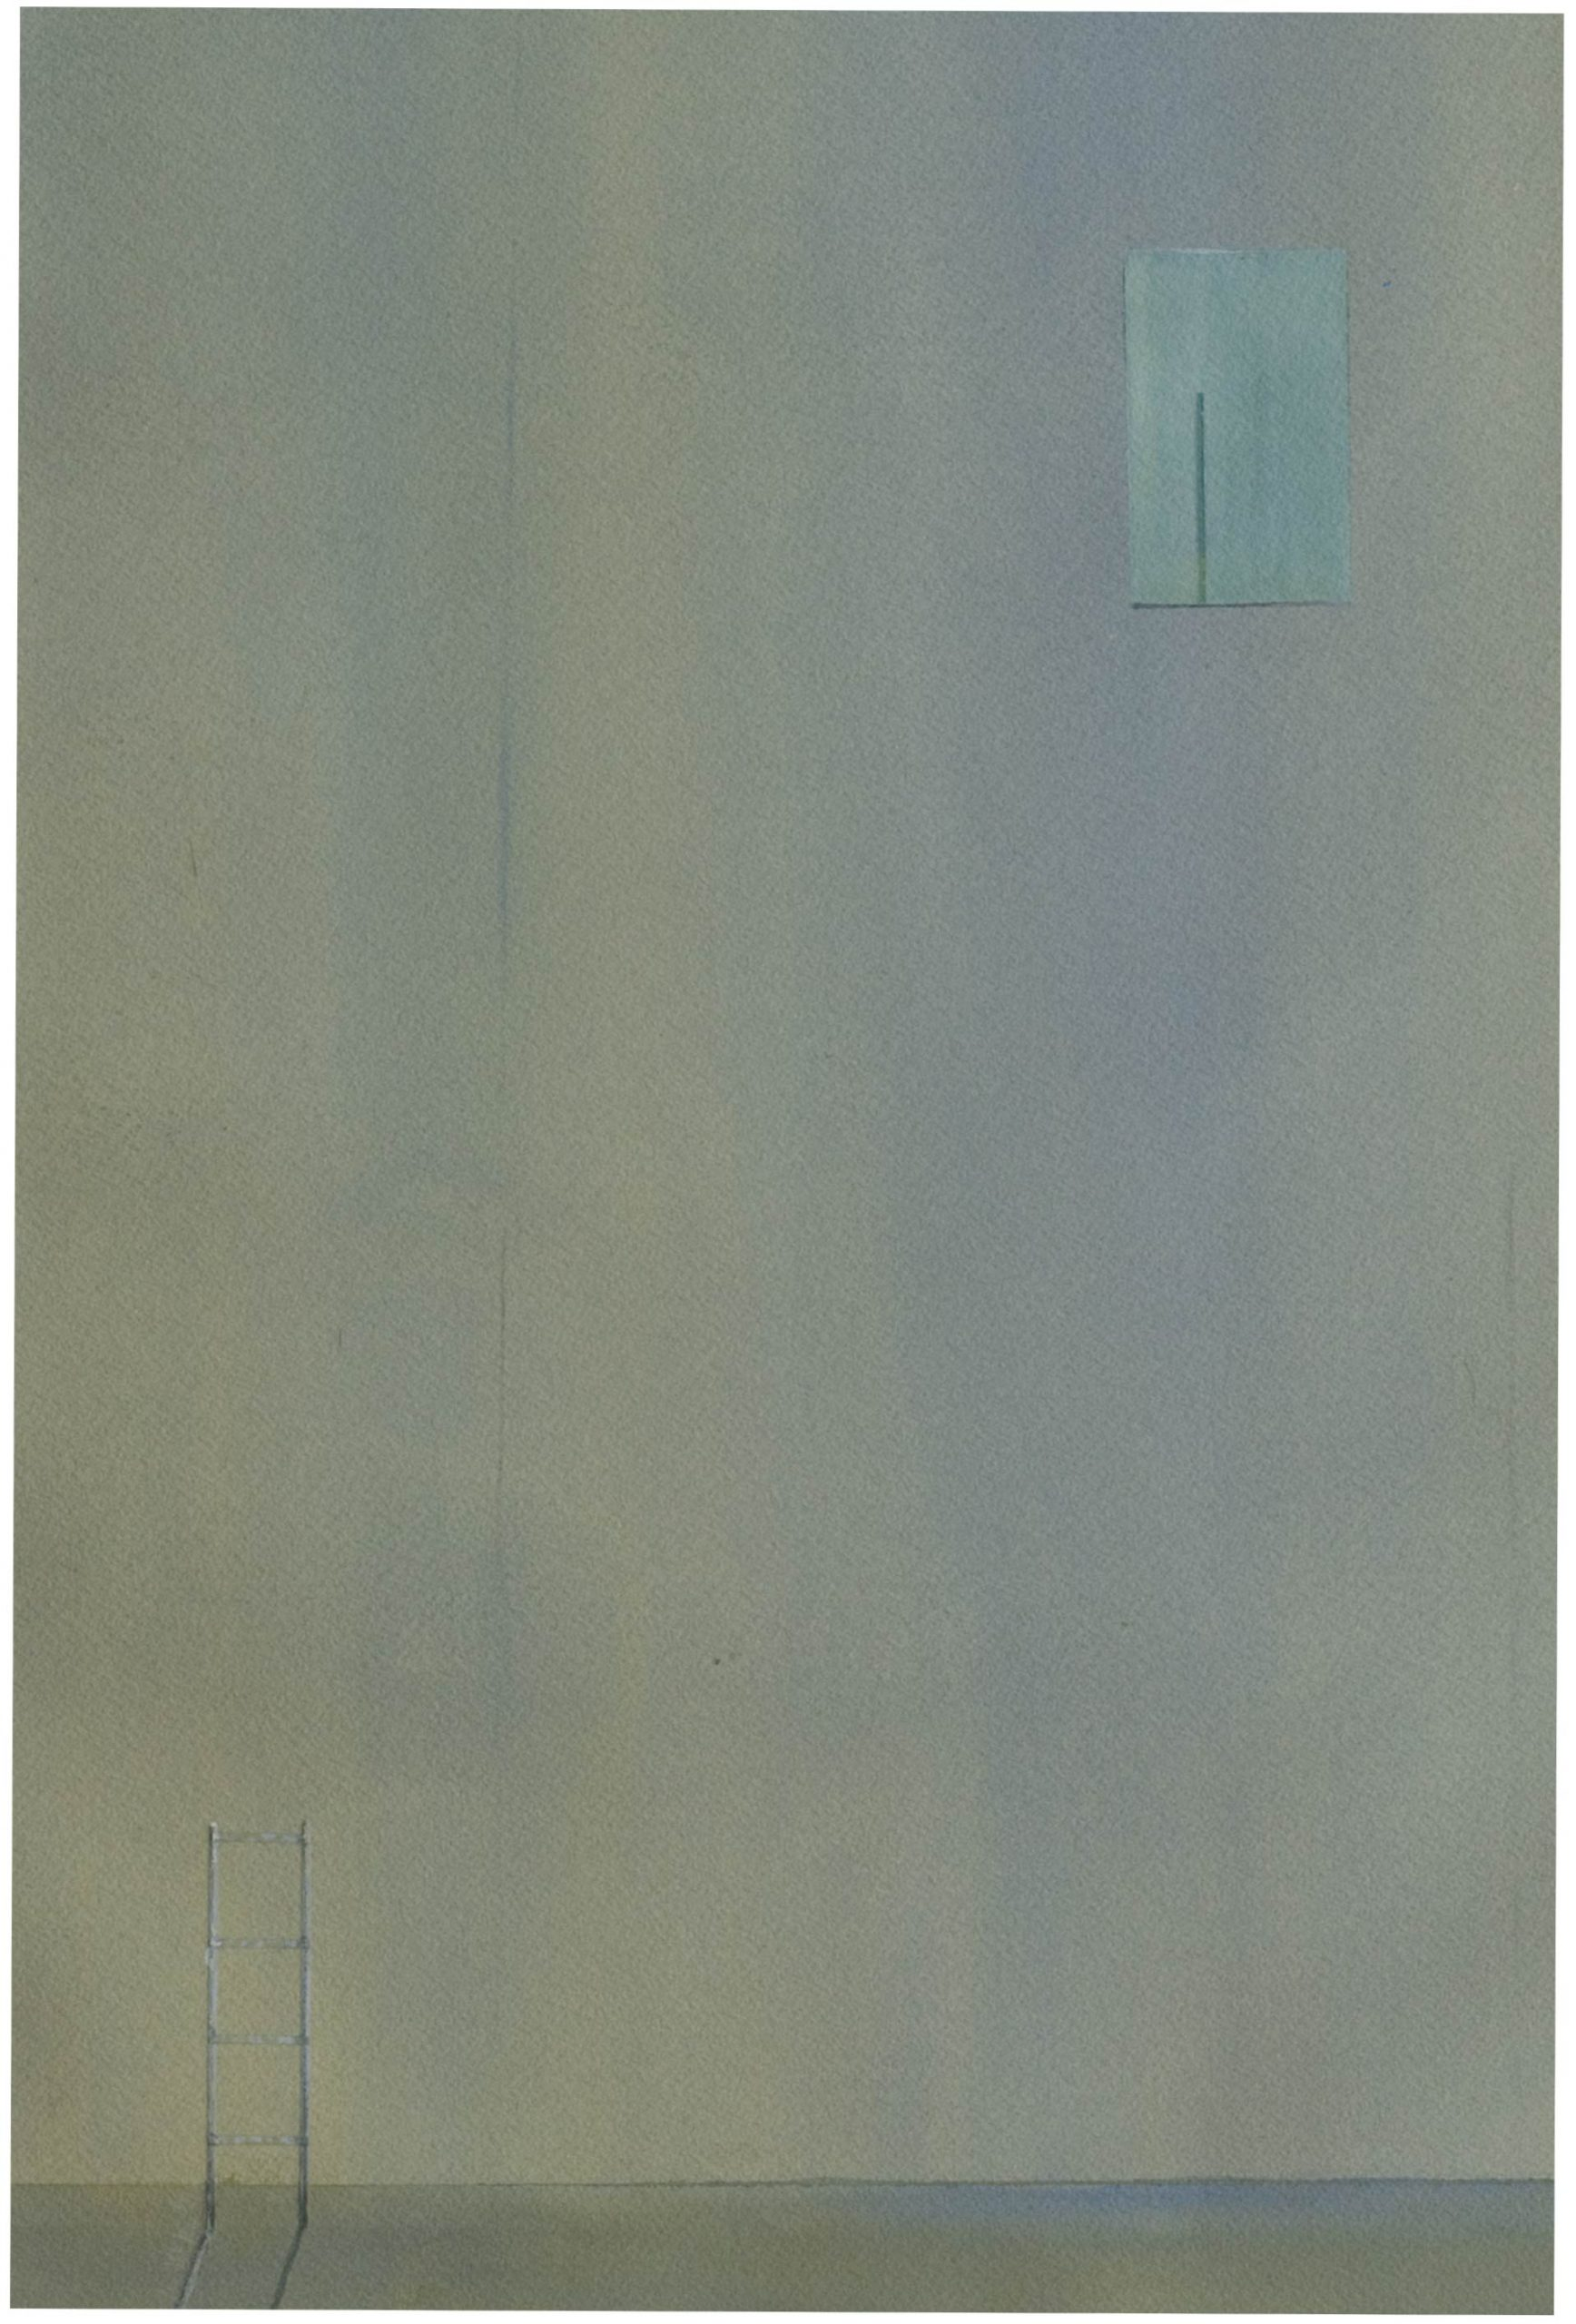 surreal minimal painting - out of reach